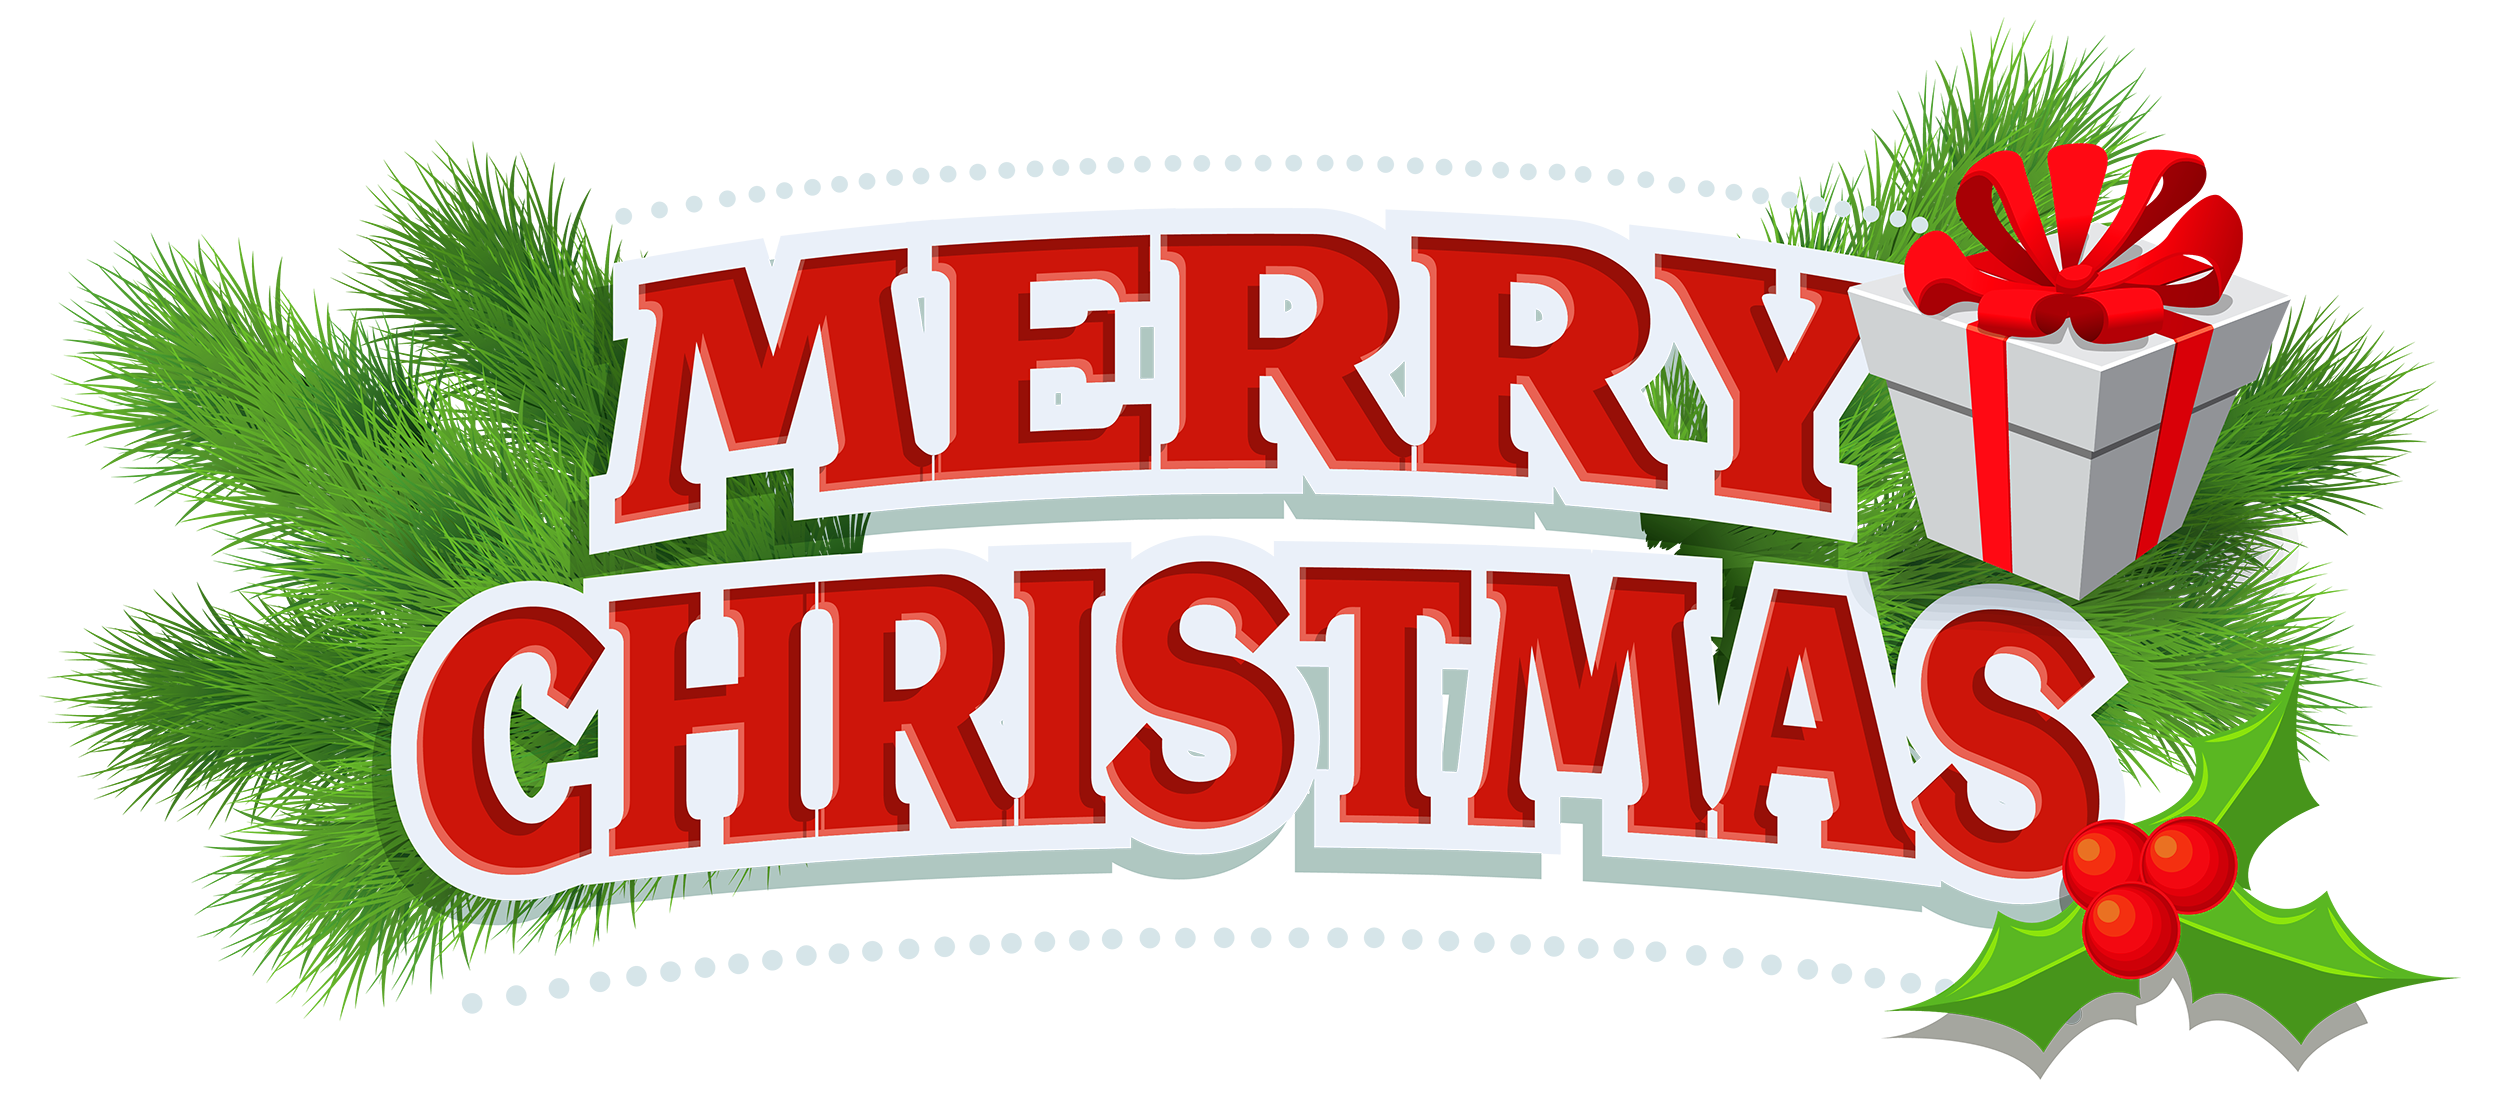 Merry christmas png happy. Decor with gift clipart